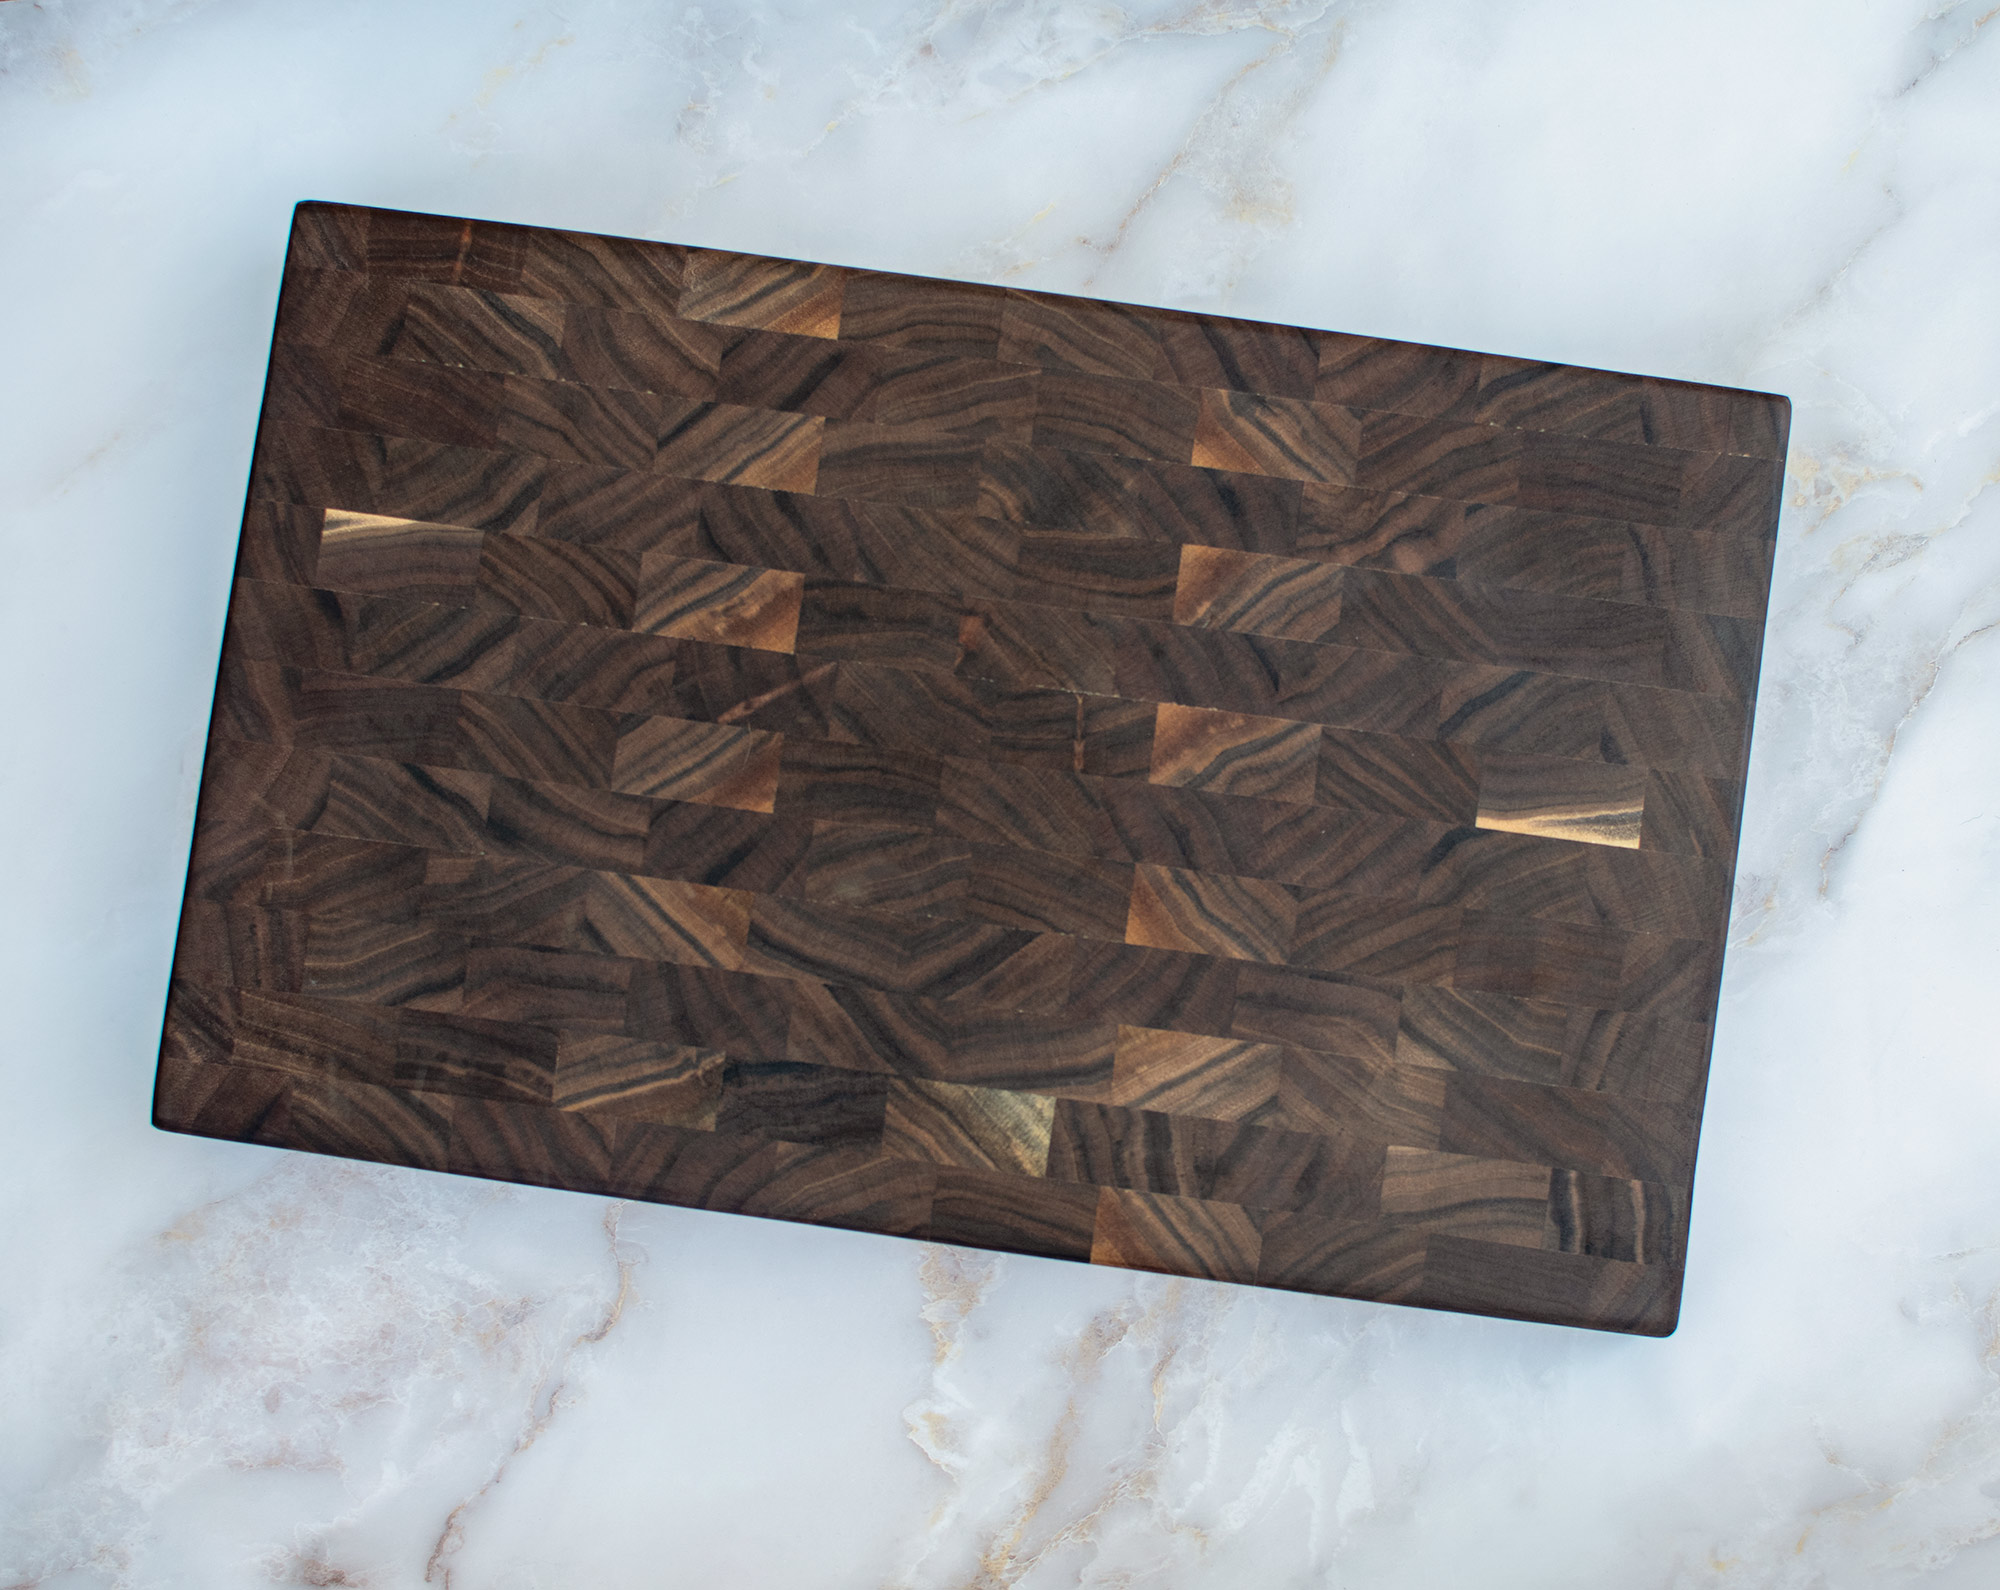 End Grain Black Walnut Cutting board made from locally harvested trees eco friendly